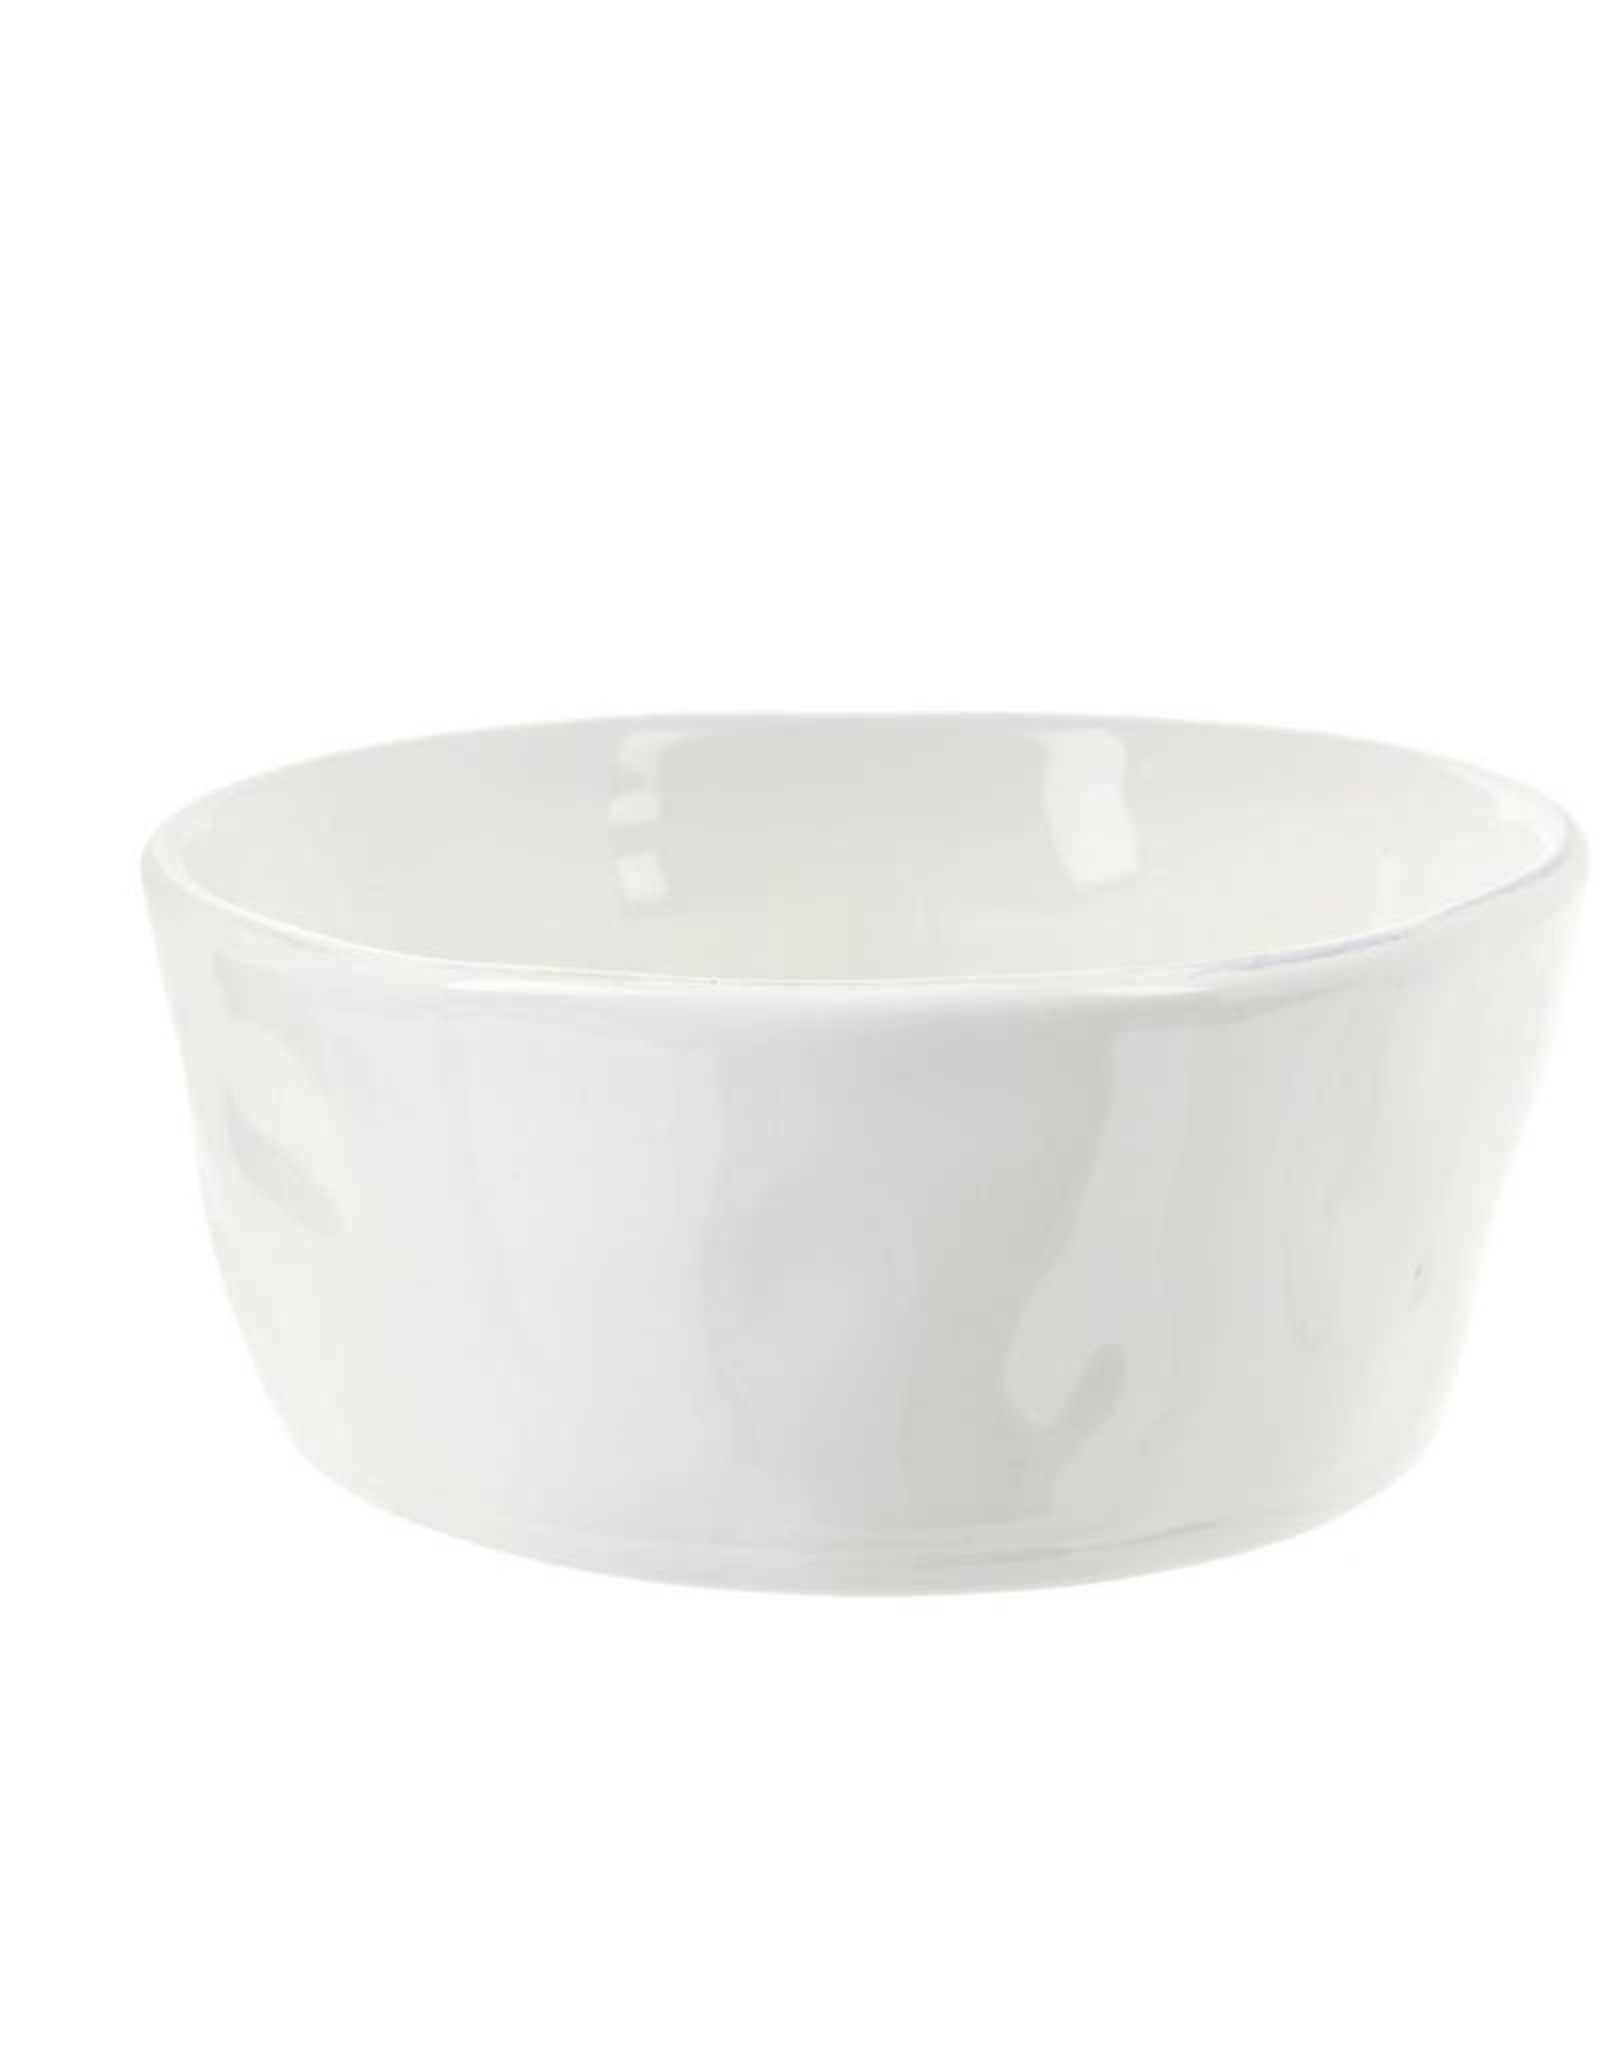 Indaba Ceres Bowl